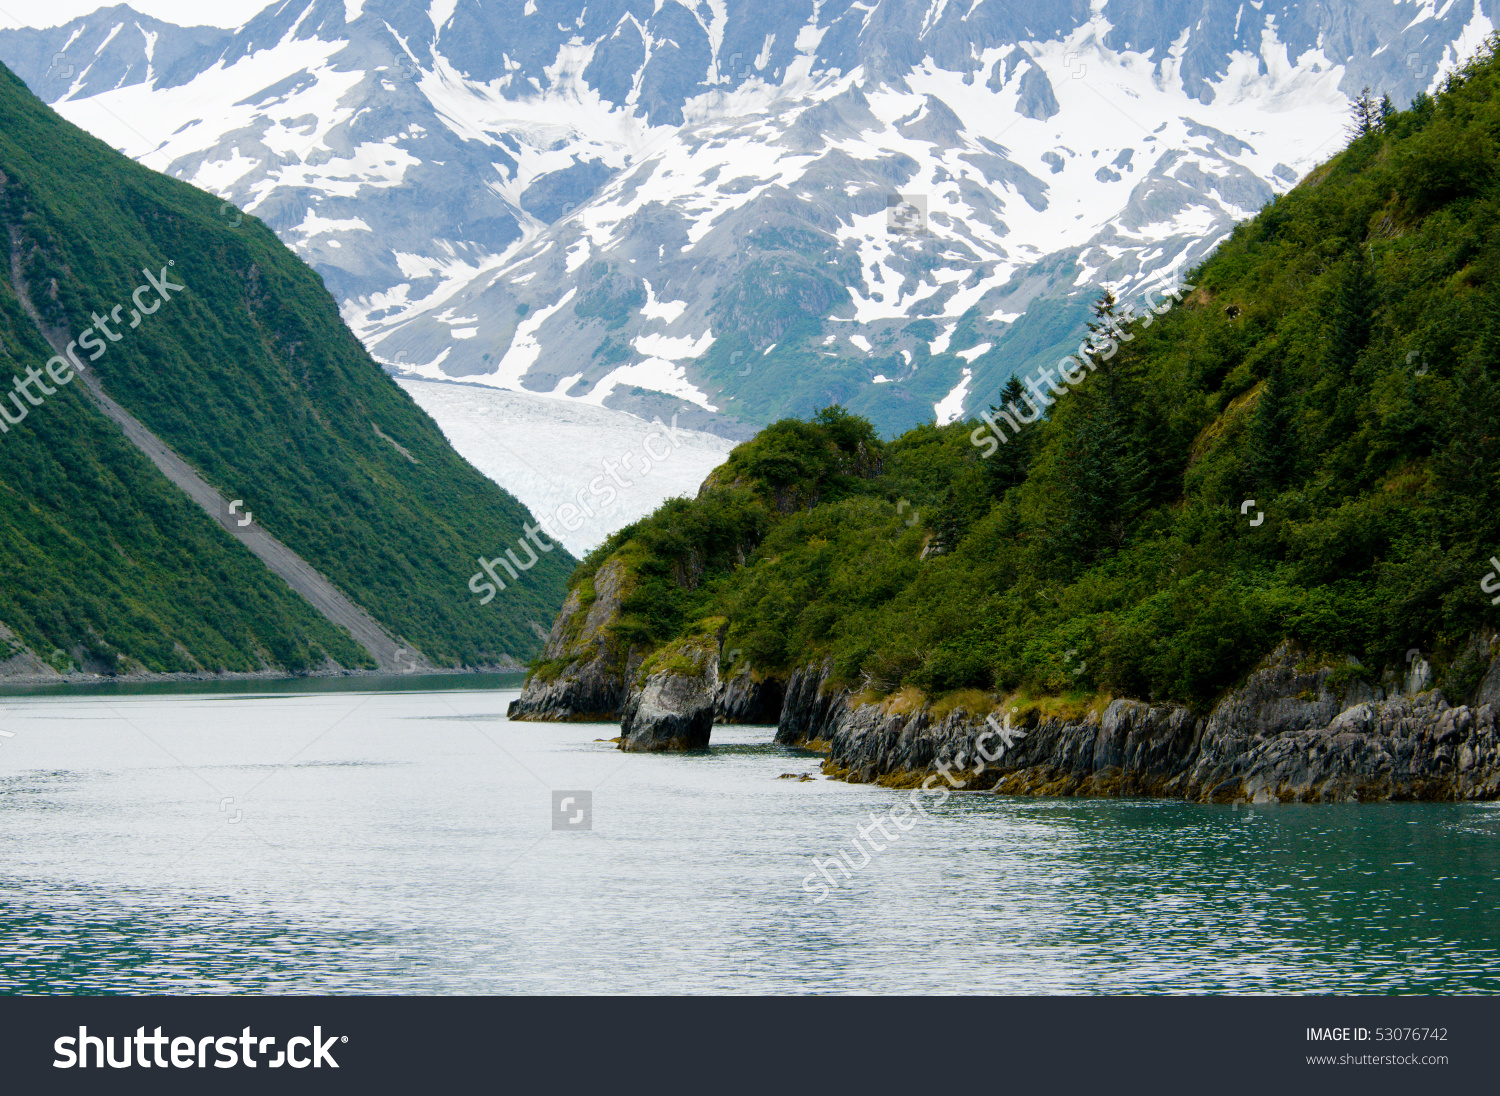 Fjords National Park clipart #5, Download drawings